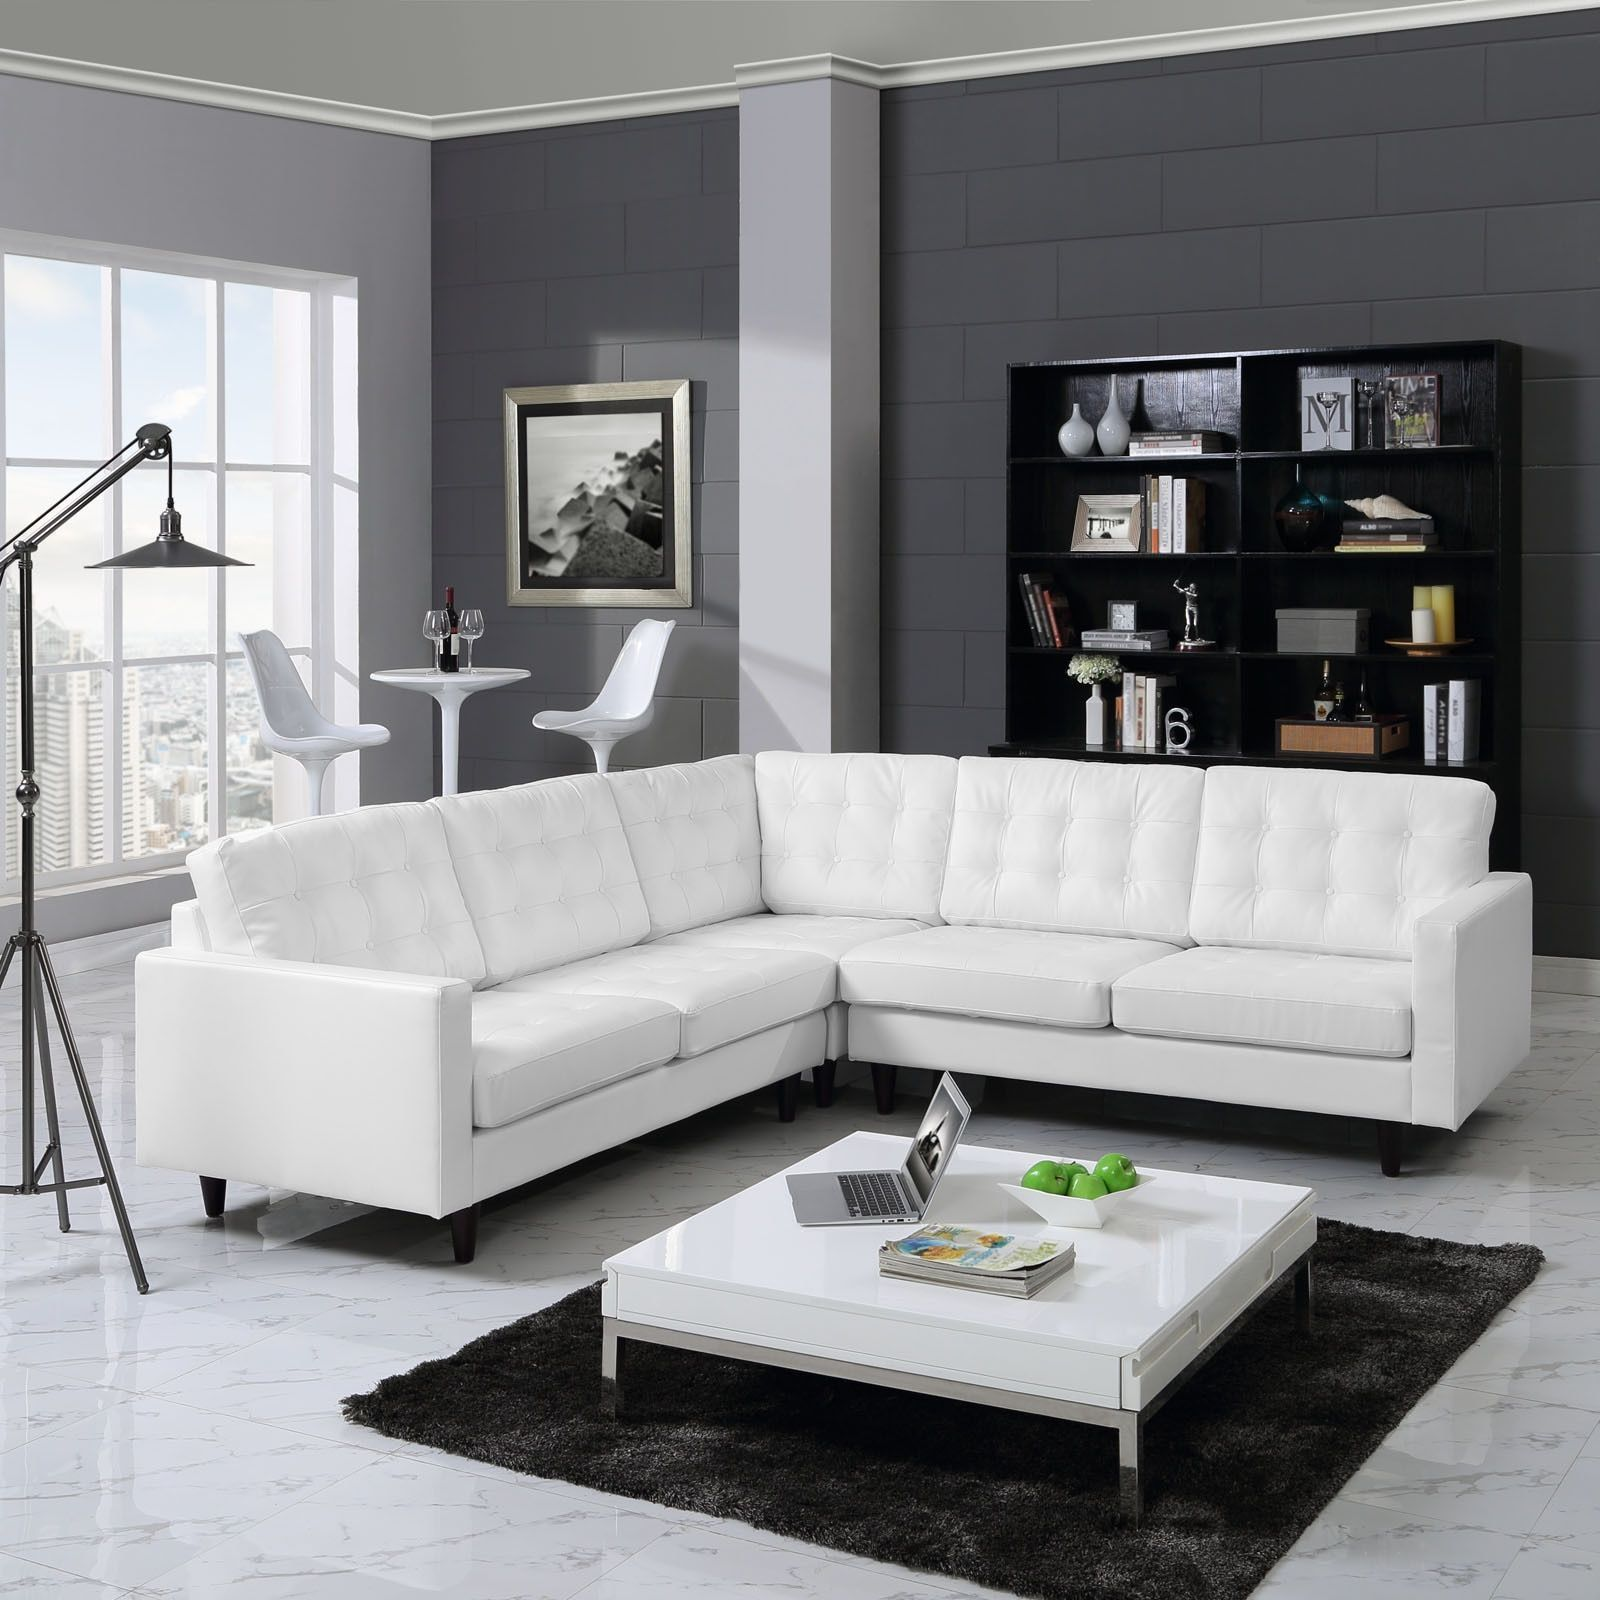 Modway Empress 3-Piece Leather Sectional Sofa Set (Black) | Leather ...